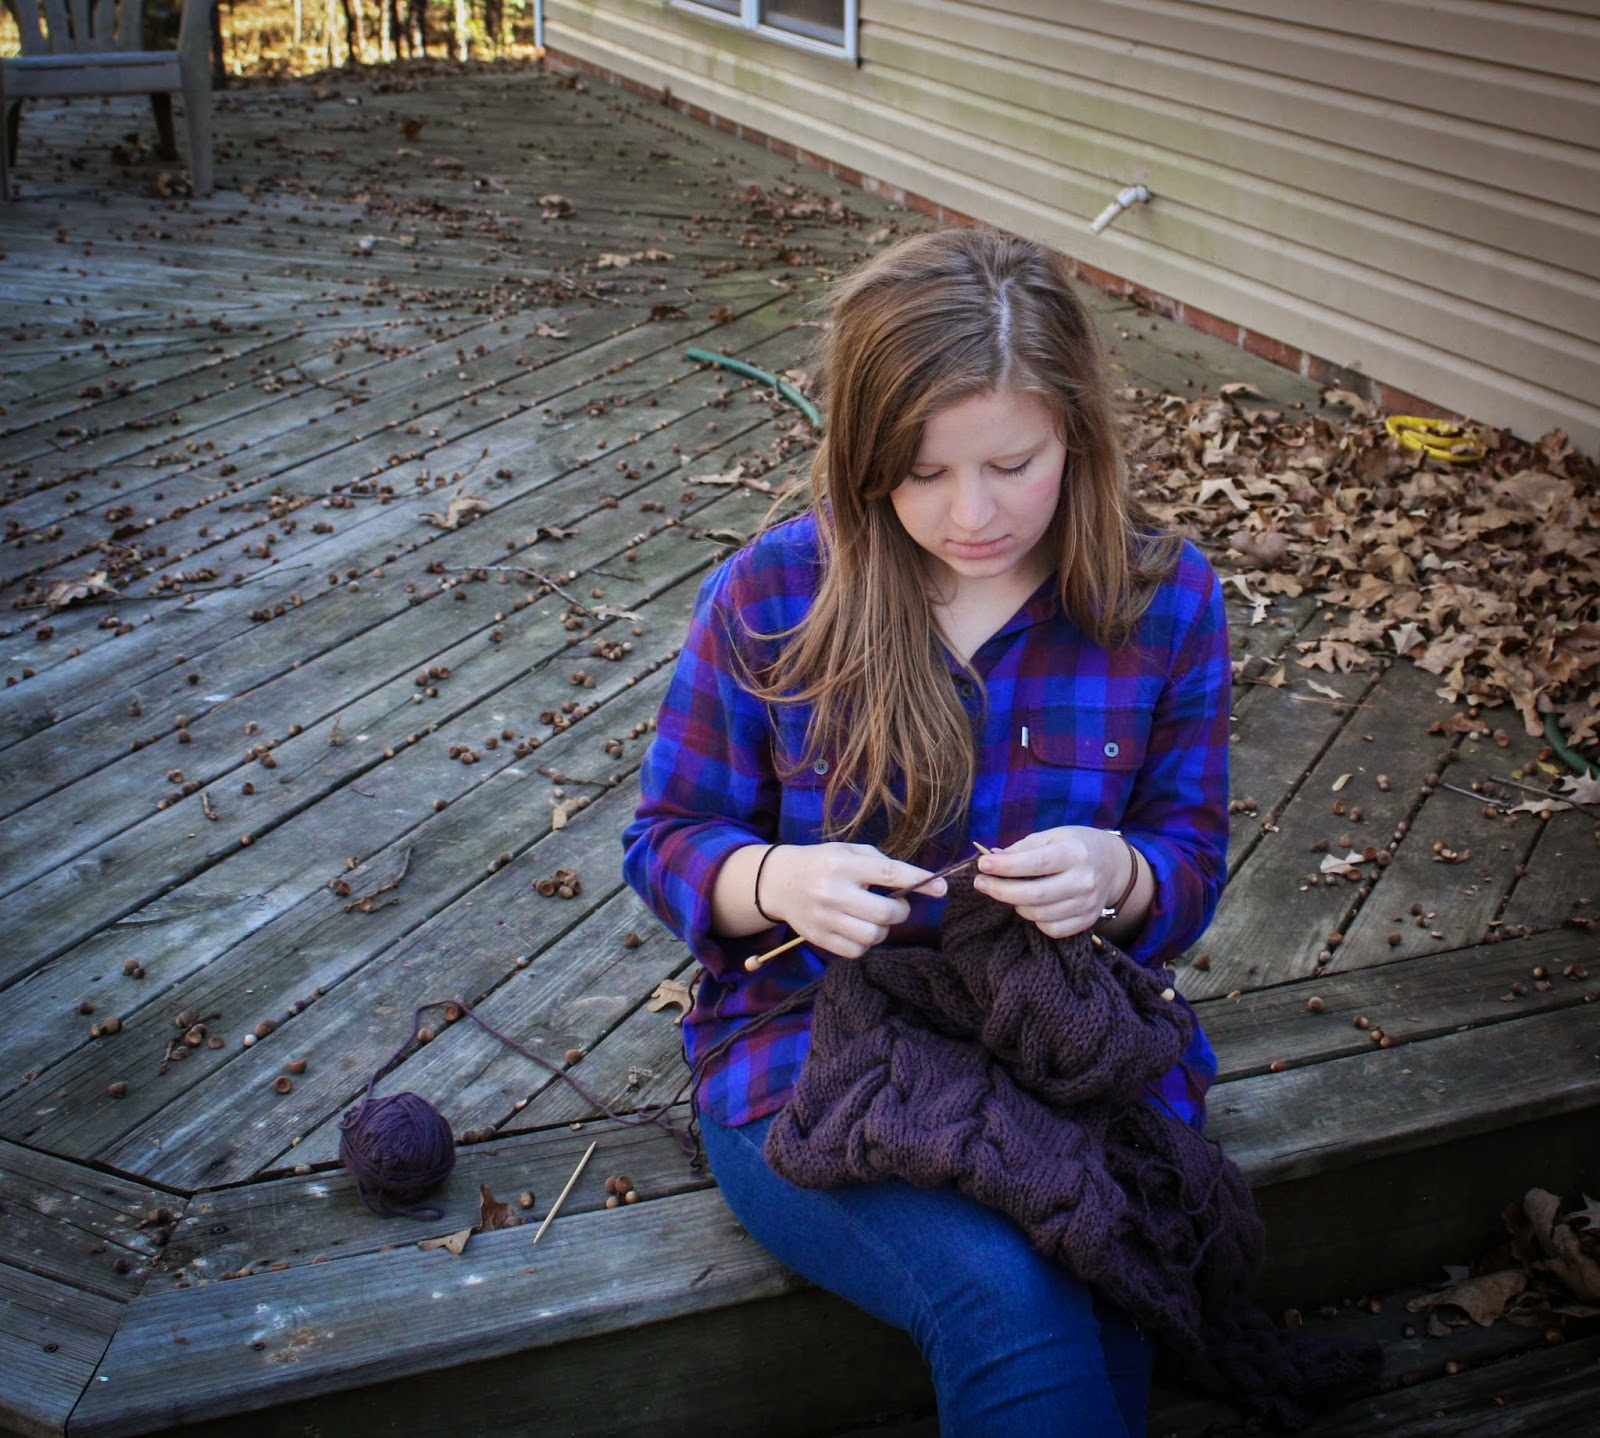 This is me knitting the scarf.